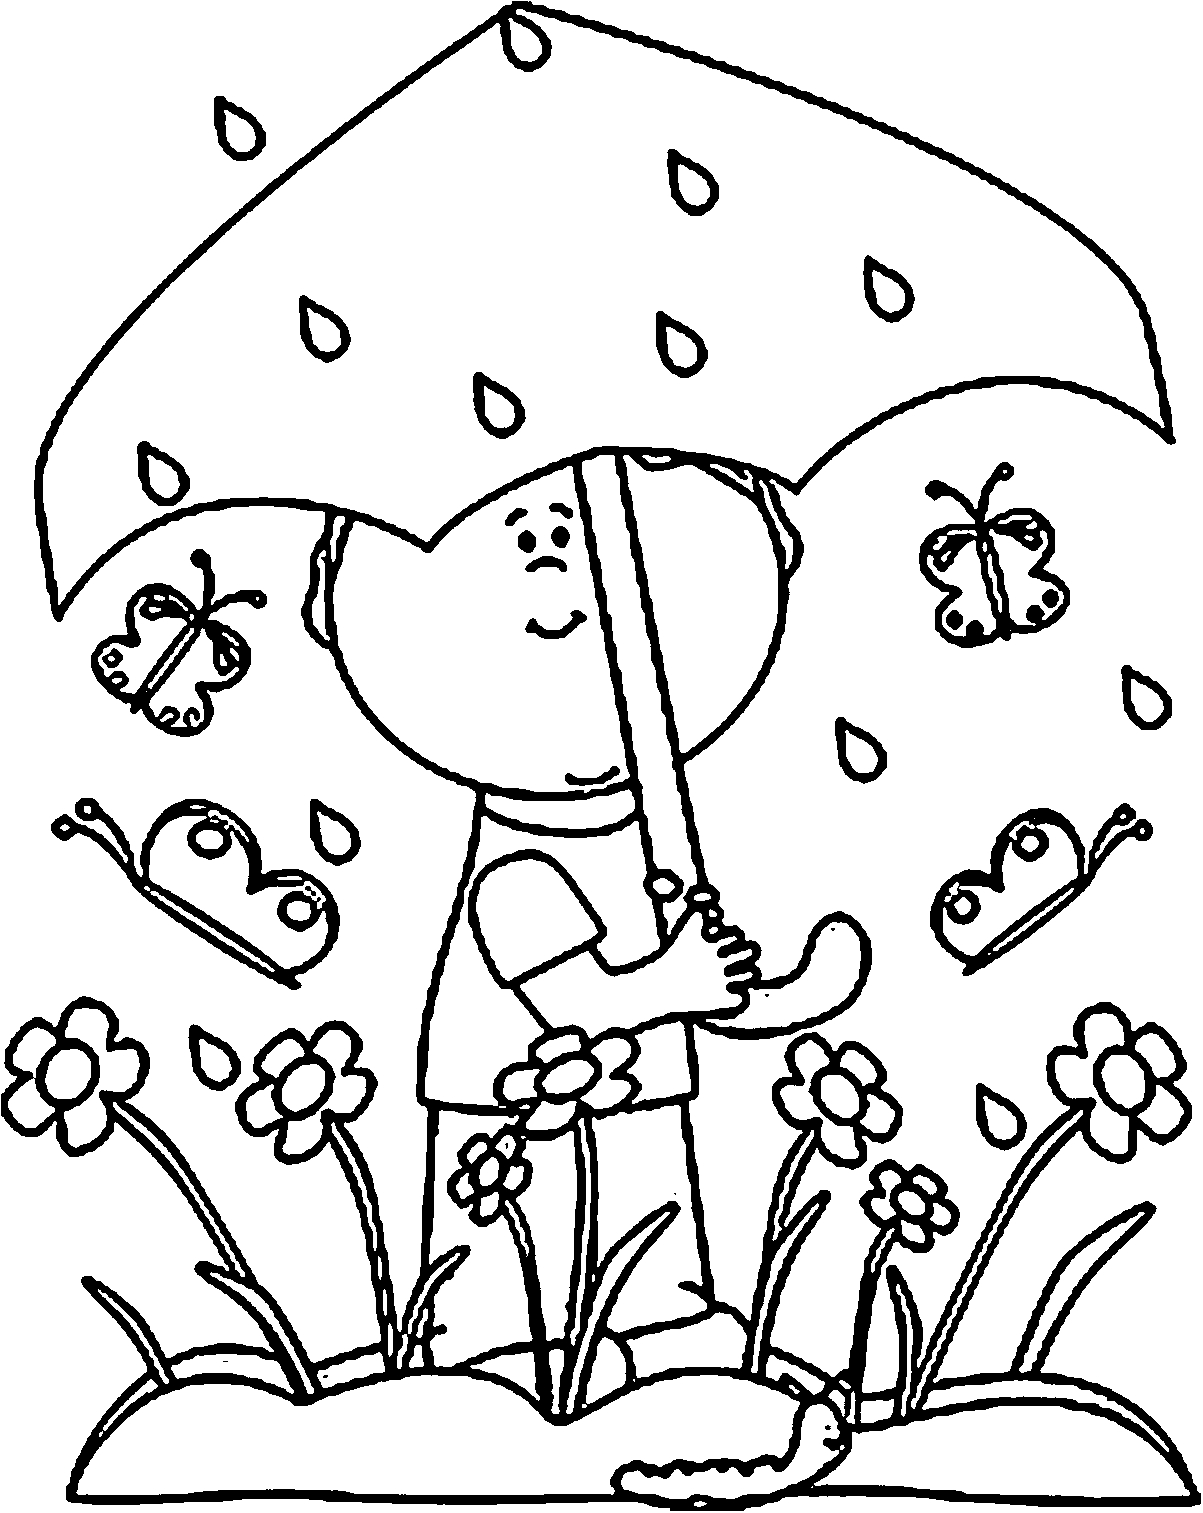 Modern Backyardigans Uniqua Coloring Pages Ensign - Examples ...